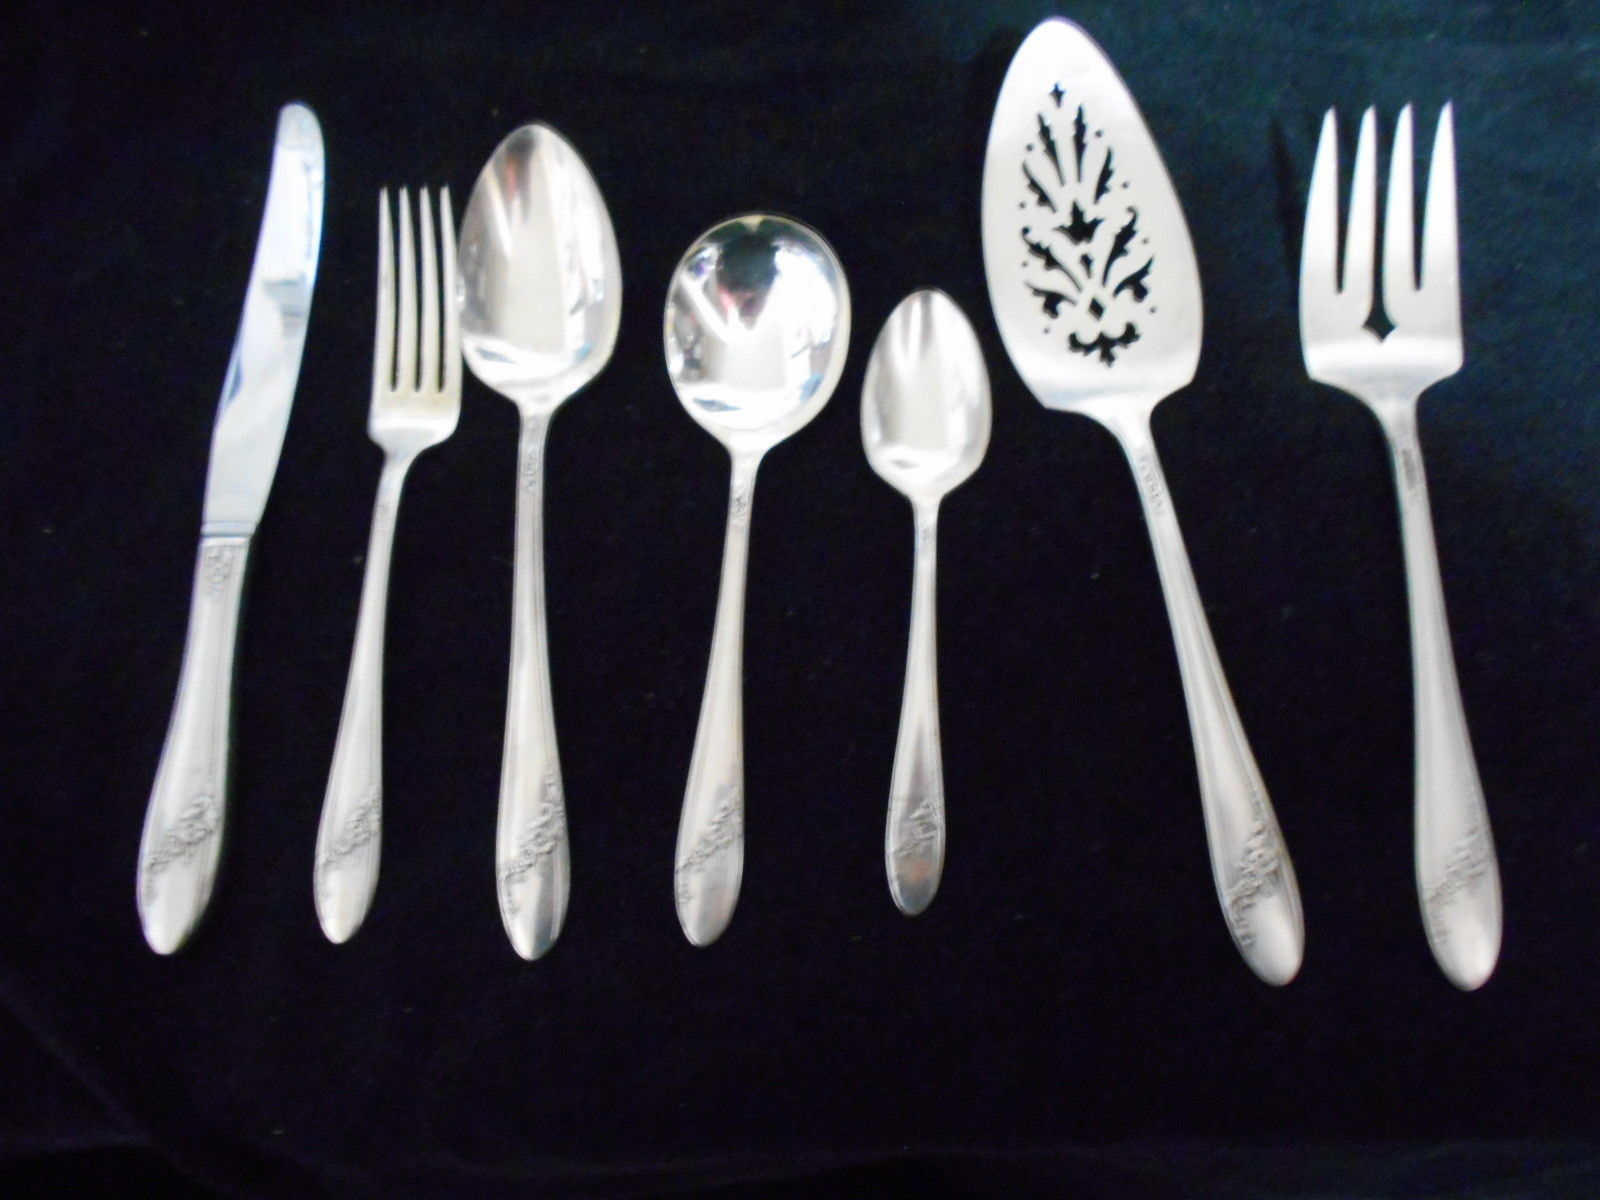 4 Vintage Solid Handle Dinner Knives Oneida Tudor Plate QUEEN BESSII Silverplate